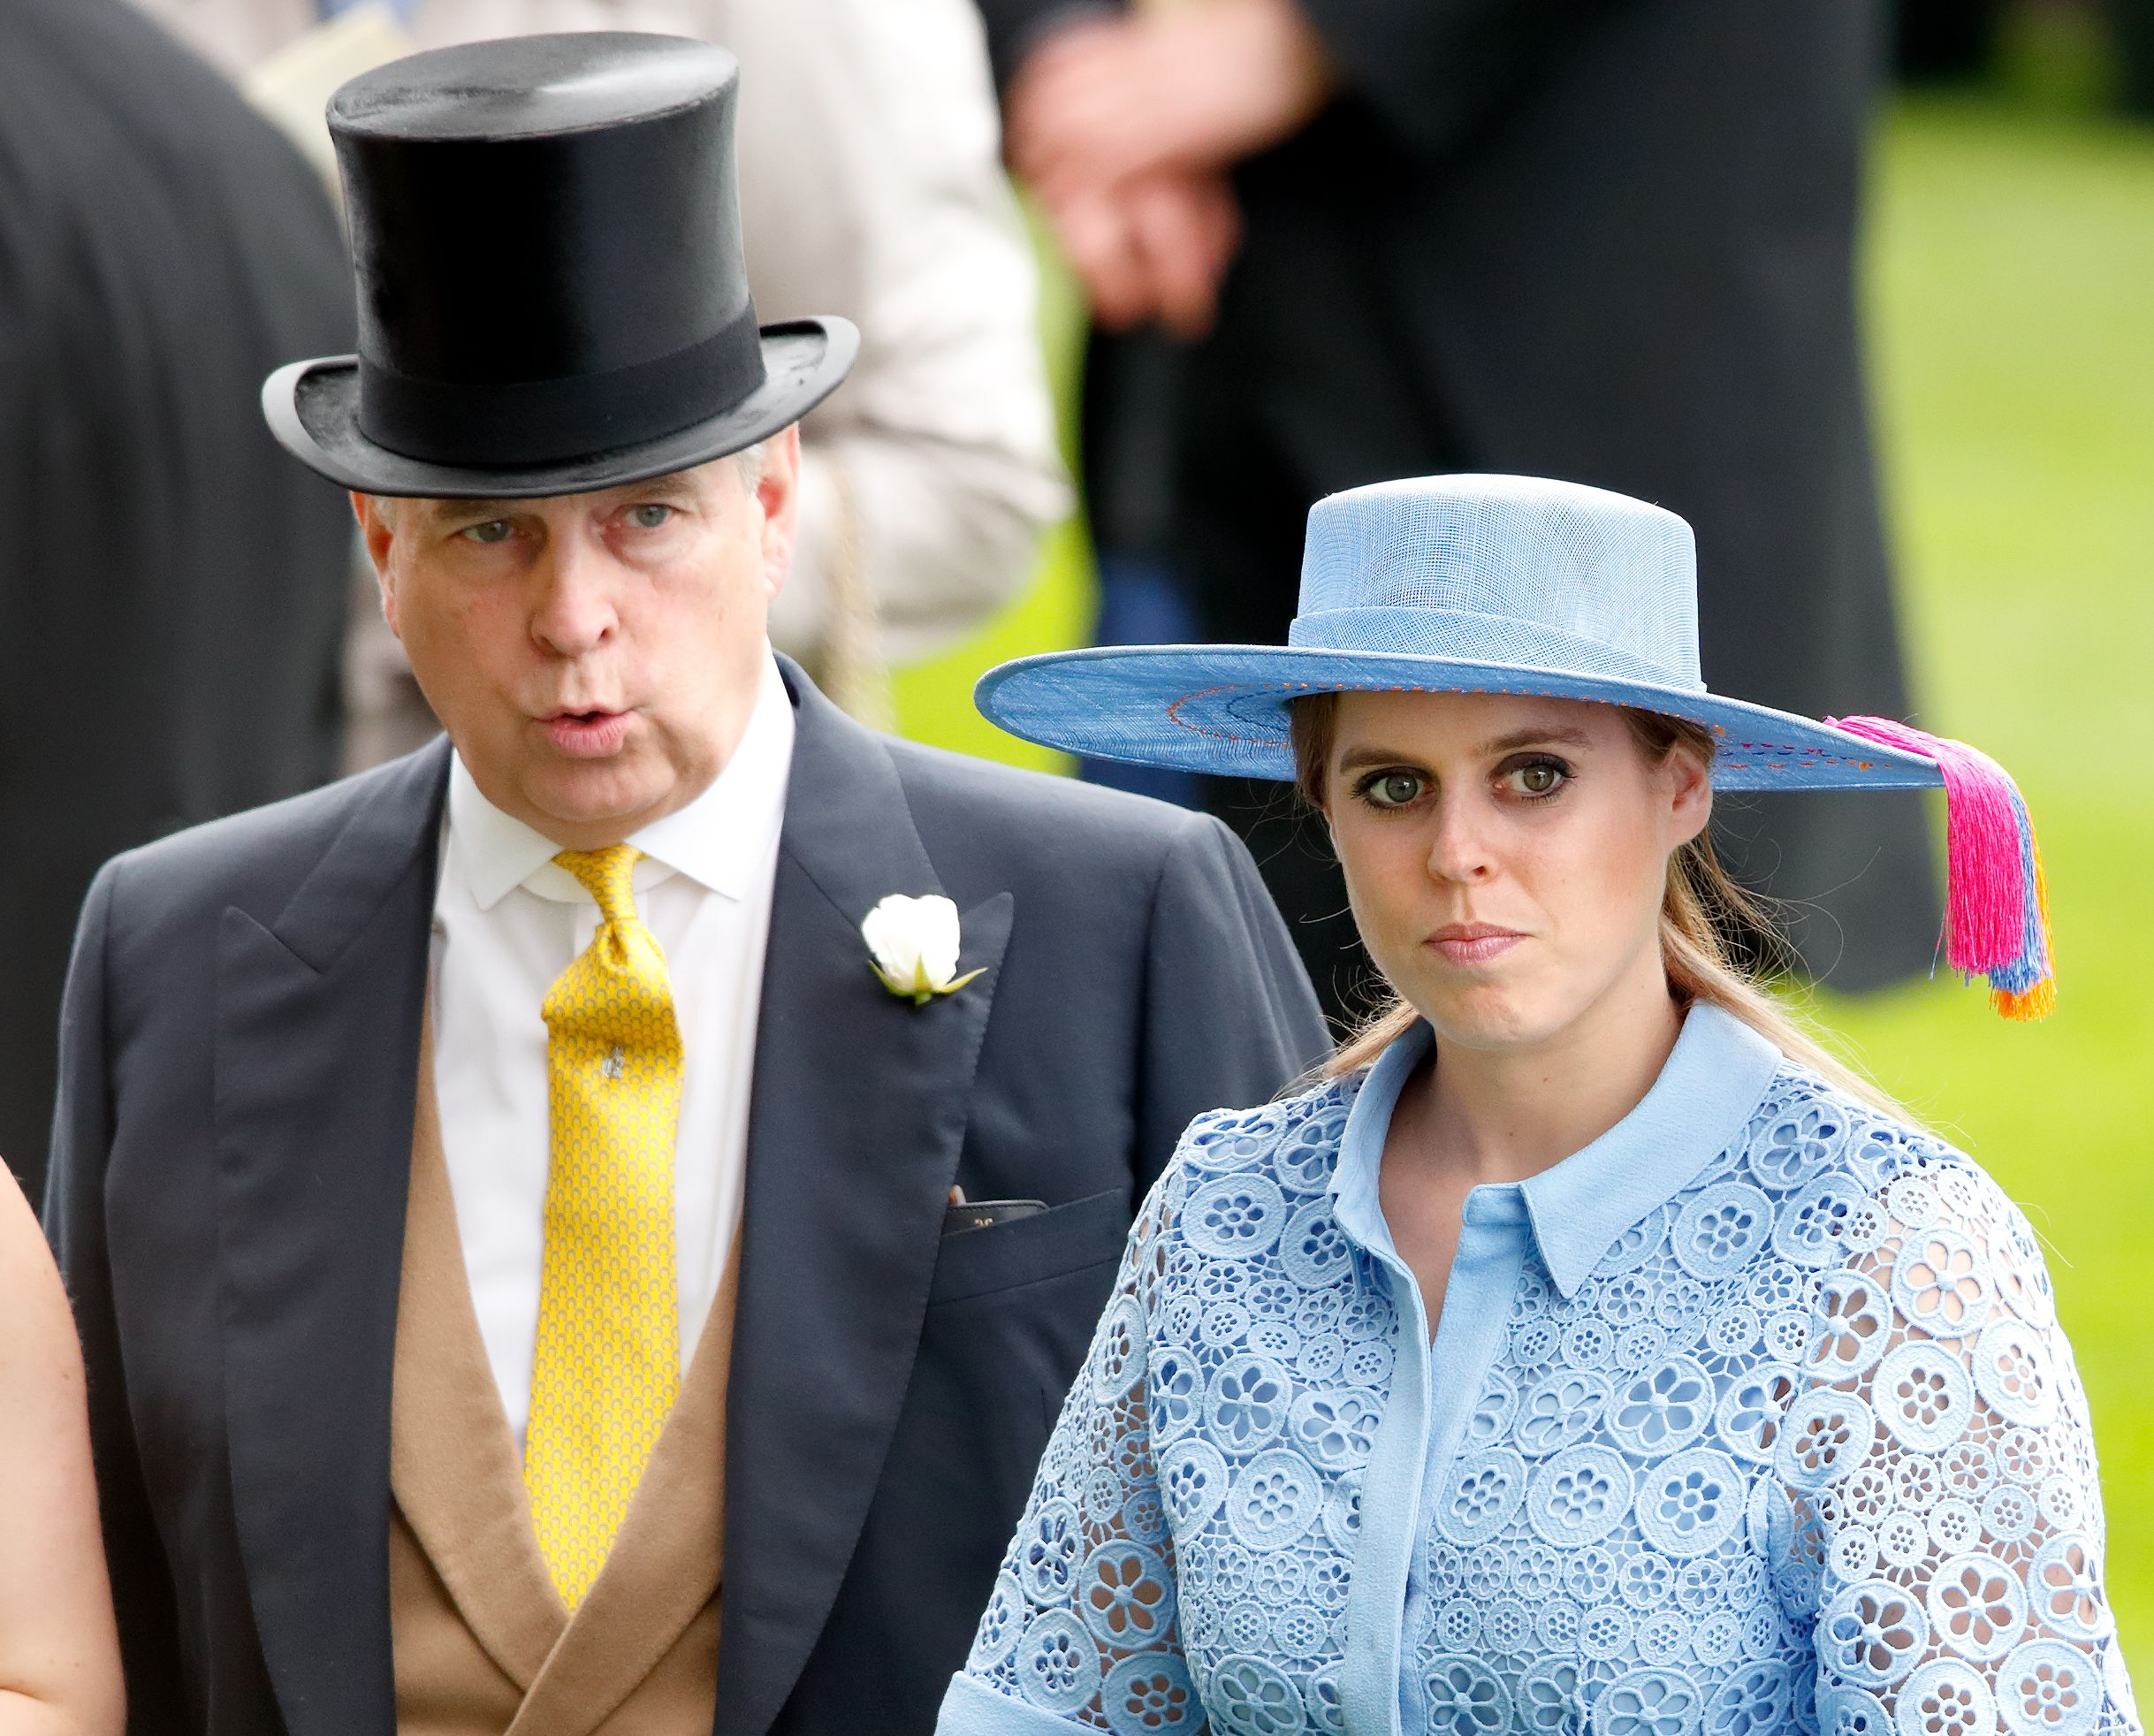 Princess Beatrice has cancelled her engagement party